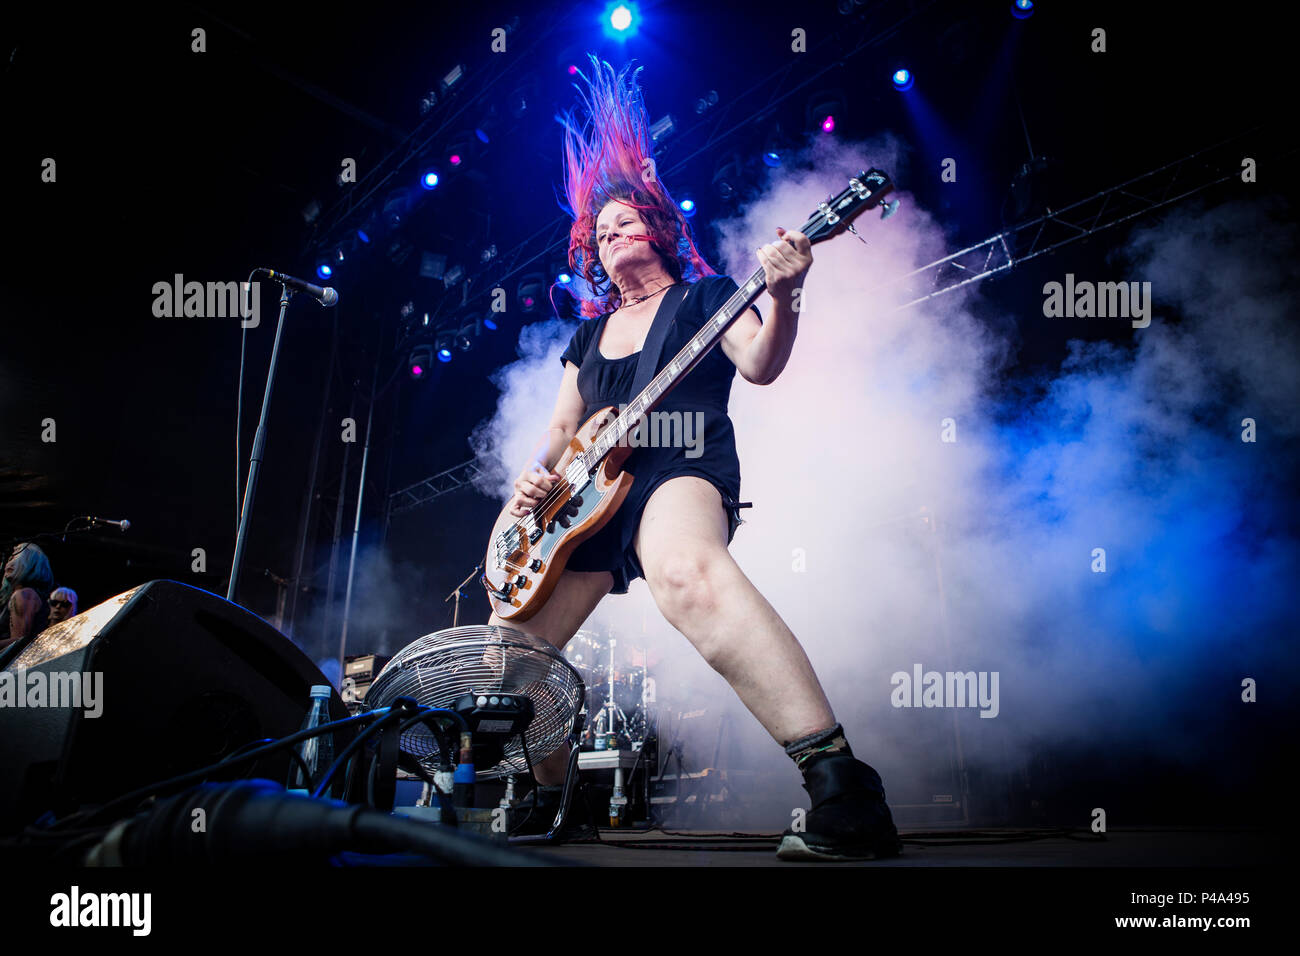 L7 Stock Photos & L7 Stock Images - Page 3 - Alamy